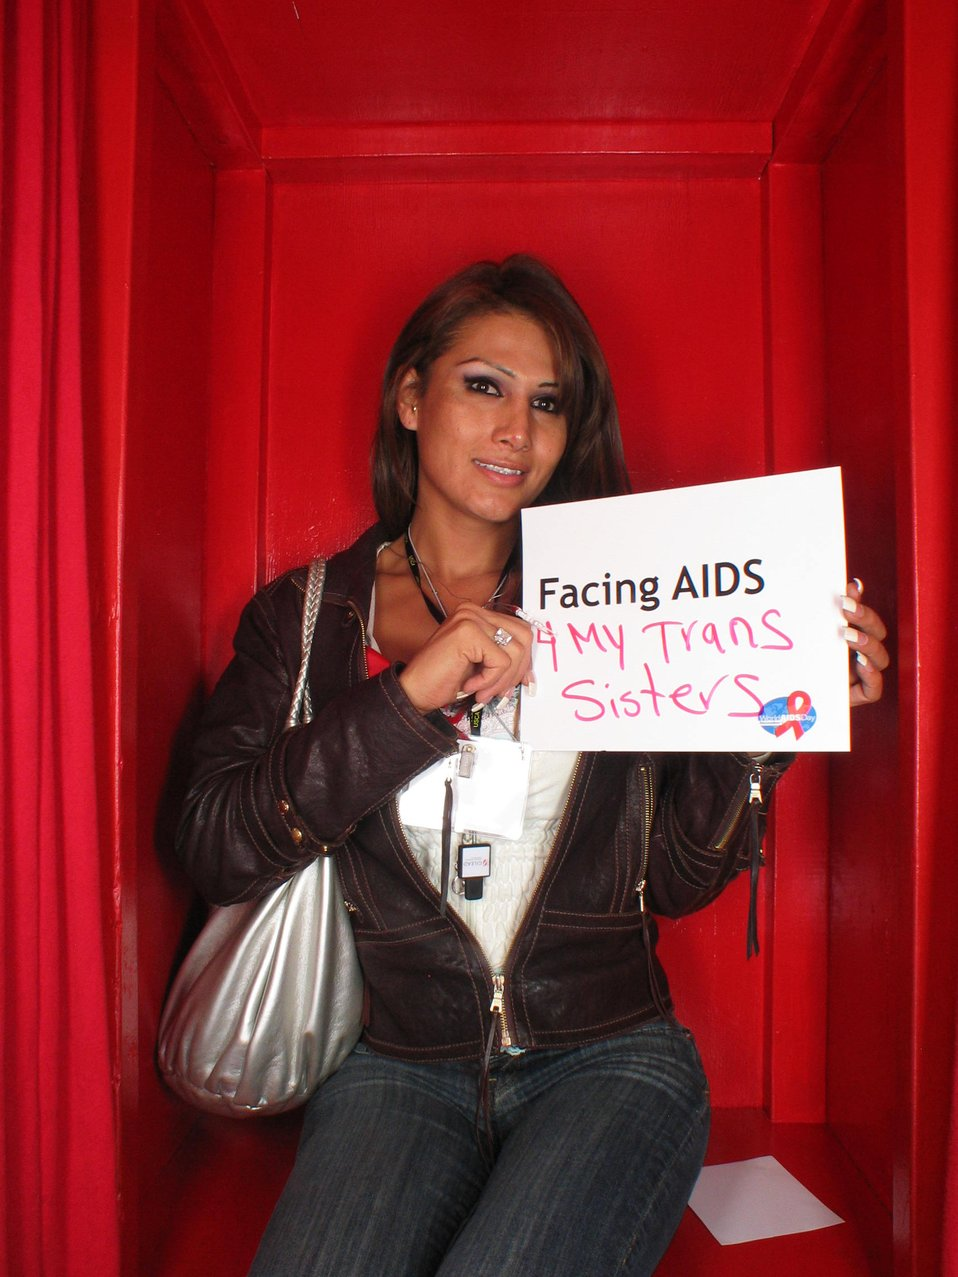 Facing AIDS 4 my trans sisters.